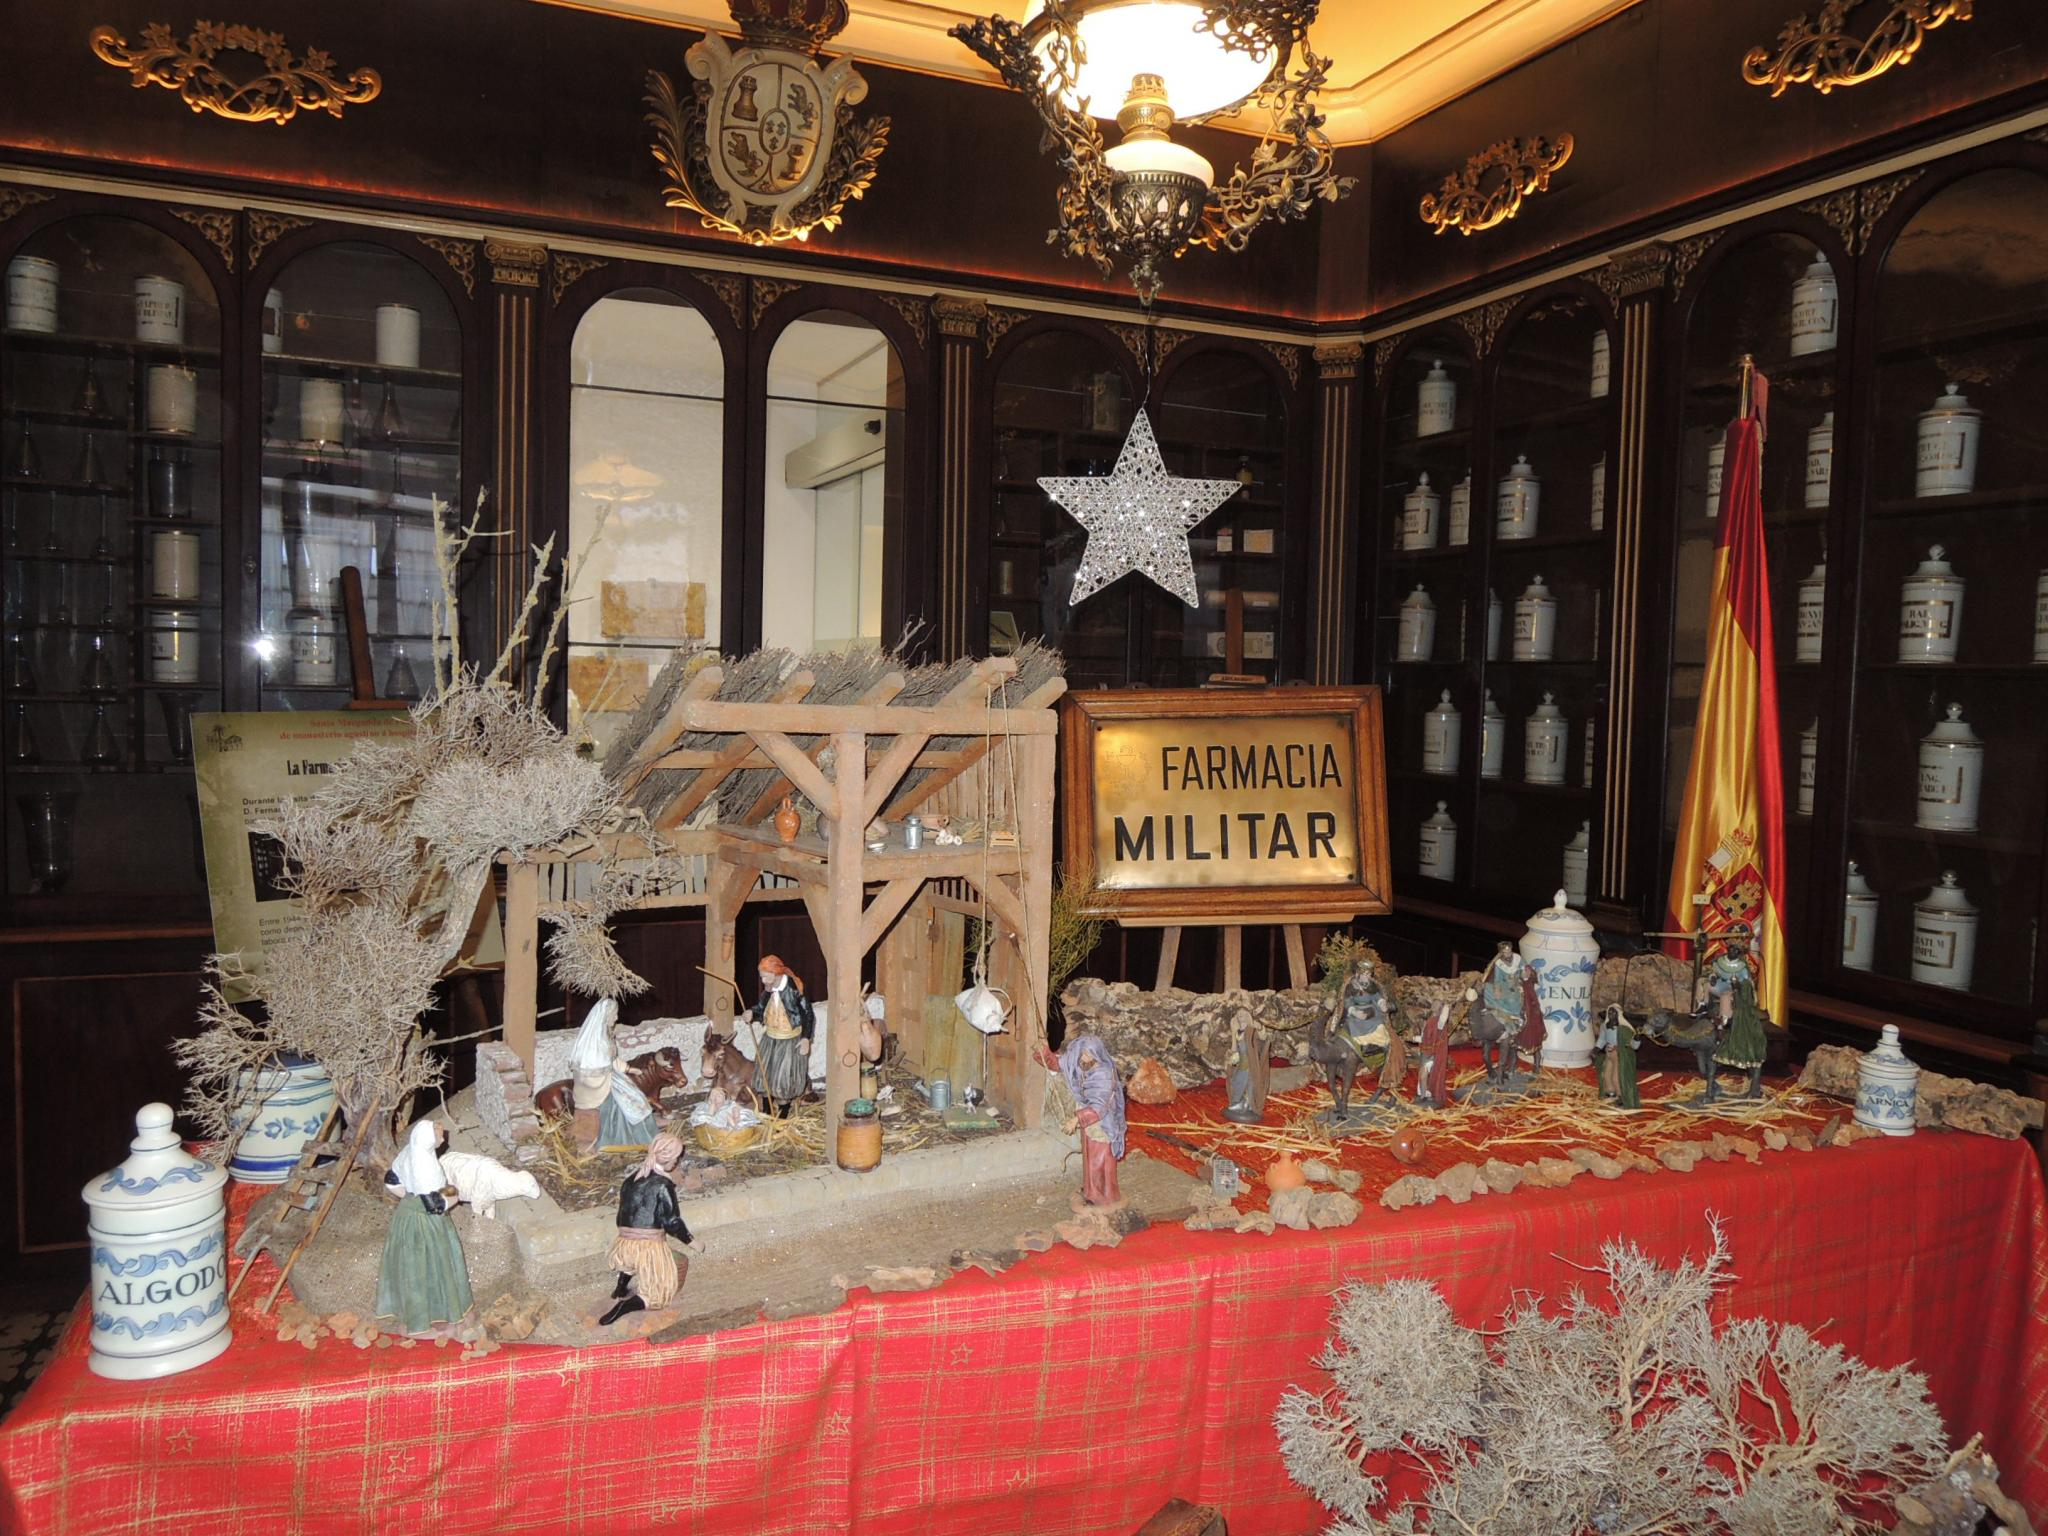 One of the nativity scenes to be found at the fair